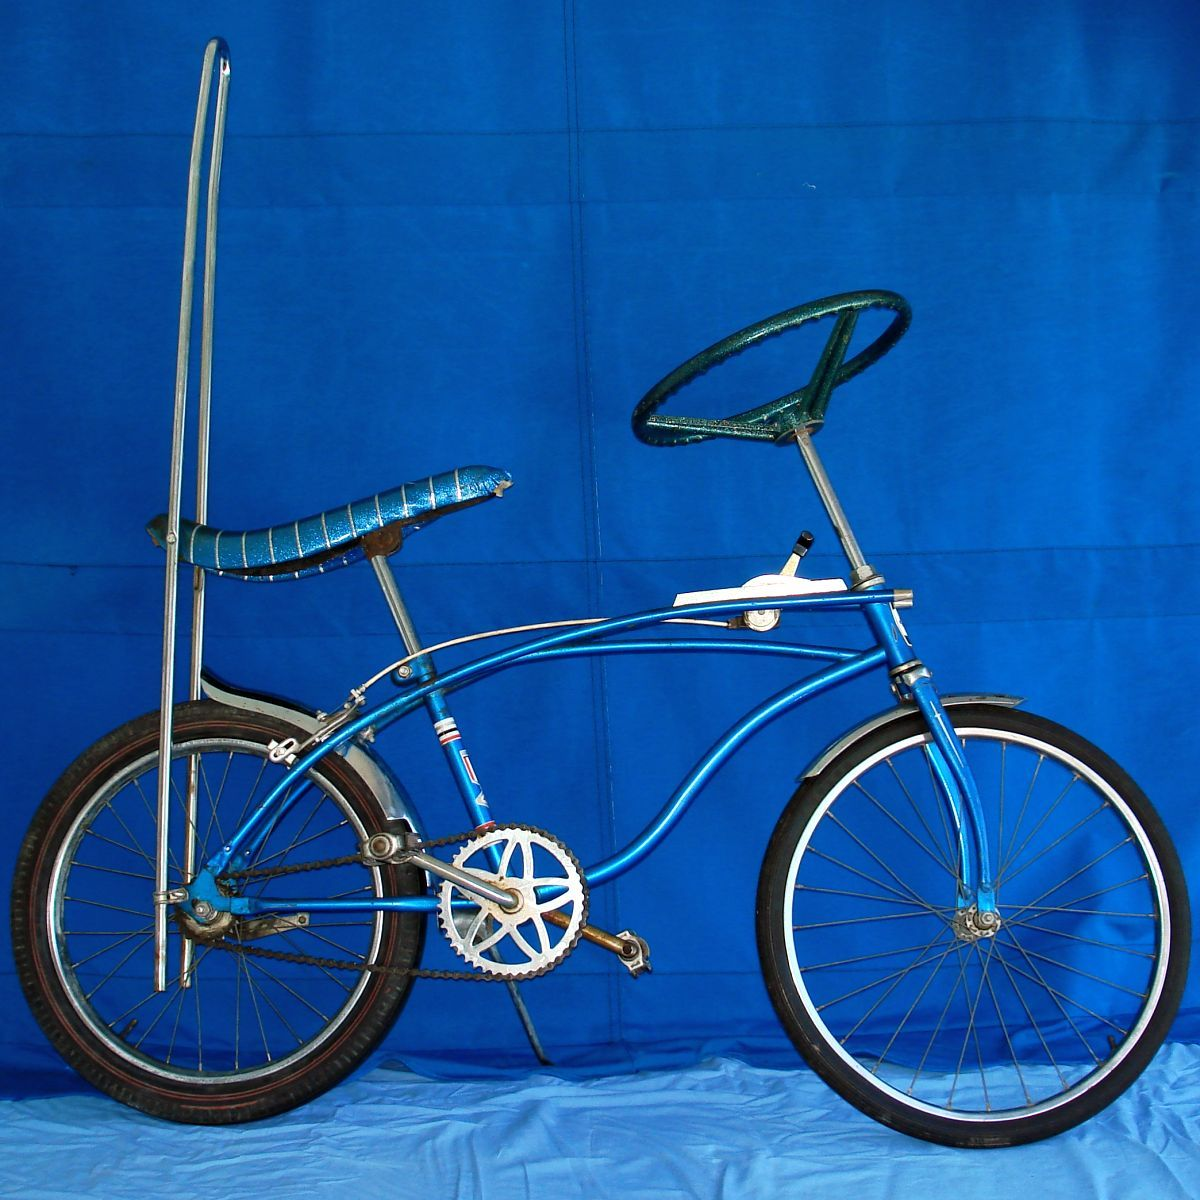 Vintage Bicycle Muscle Bikes Google Zoeken Bicycles